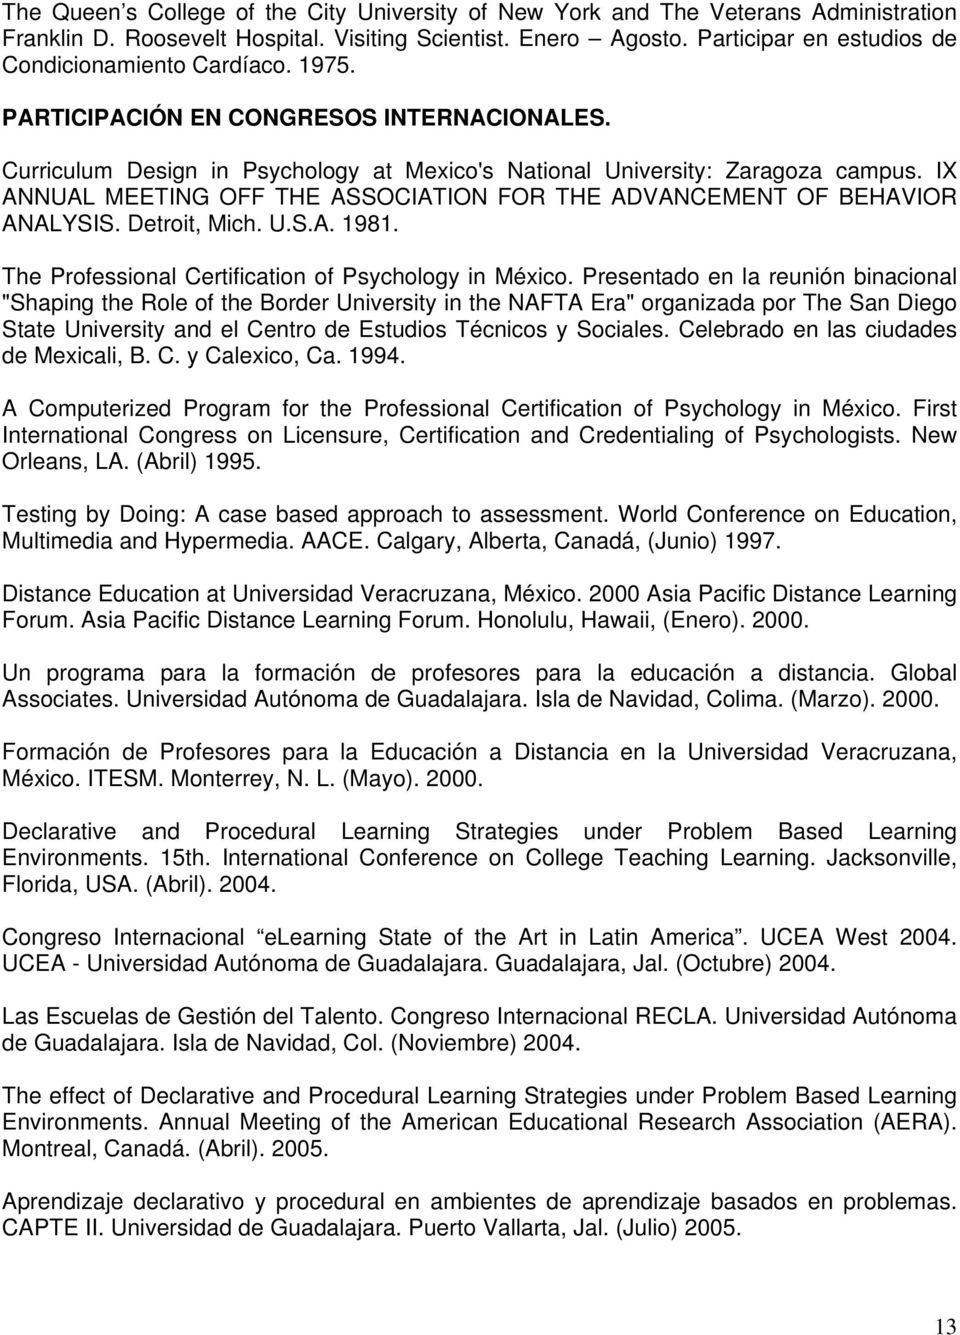 IX ANNUAL MEETING OFF THE ASSOCIATION FOR THE ADVANCEMENT OF BEHAVIOR ANALYSIS. Detroit, Mich. U.S.A. 1981. The Professional Certification of Psychology in México.